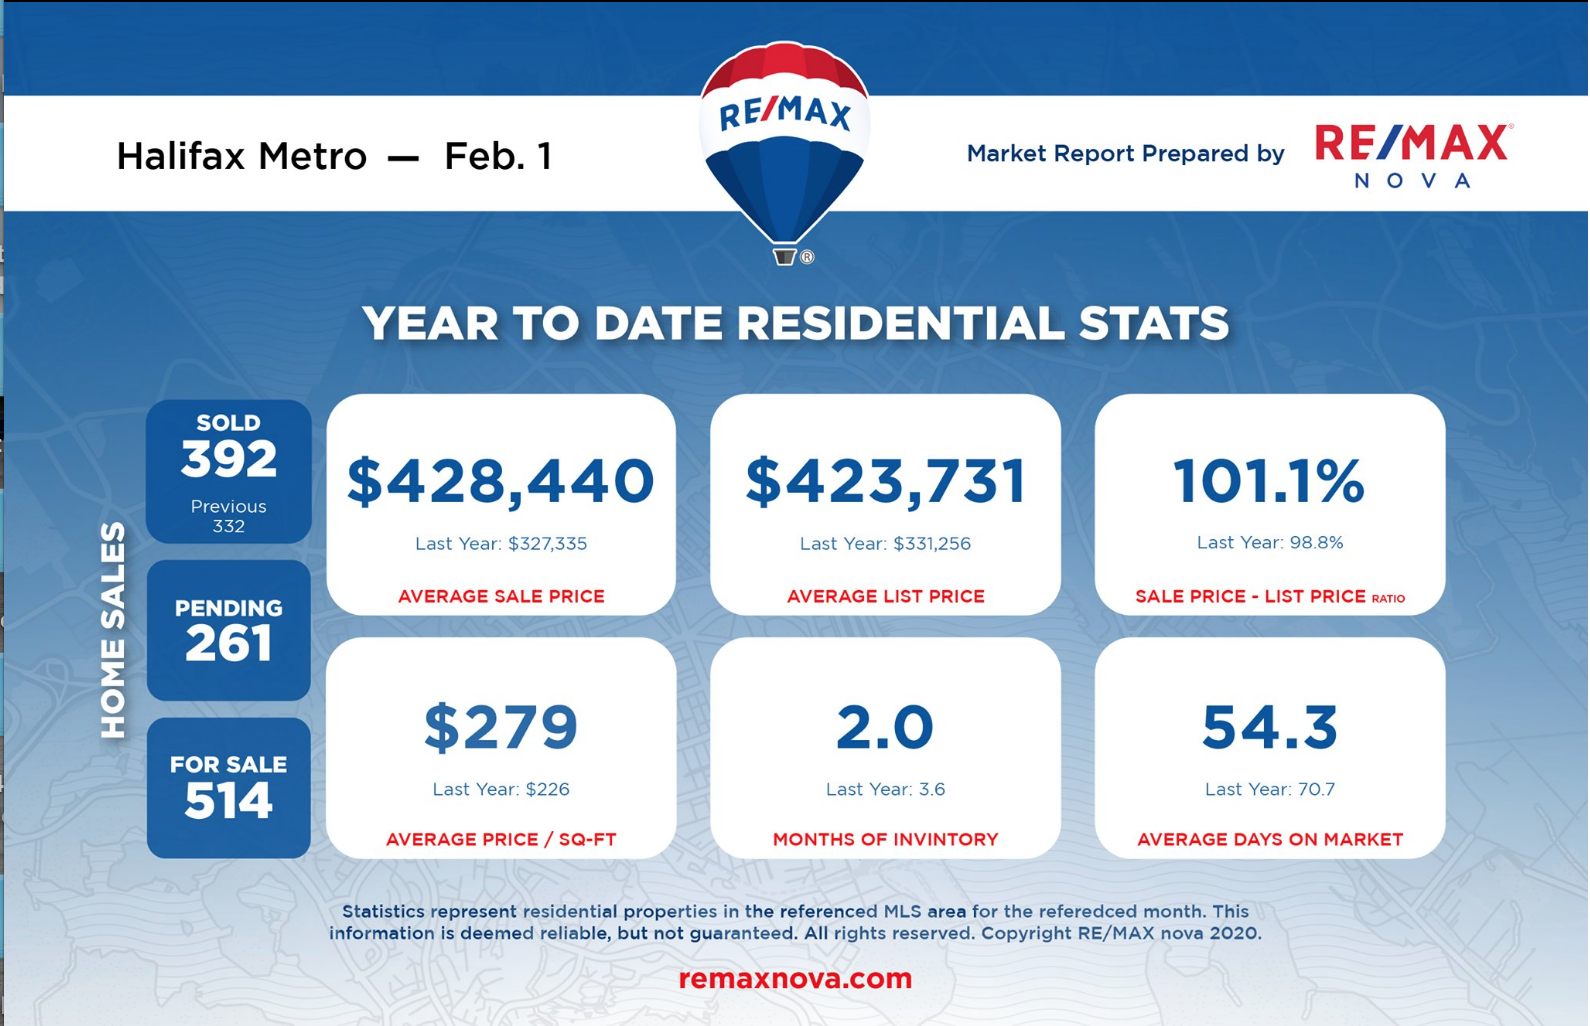 year to date residential sales statistics for Halifax   RE/MAX NOVA®   MLS® listings